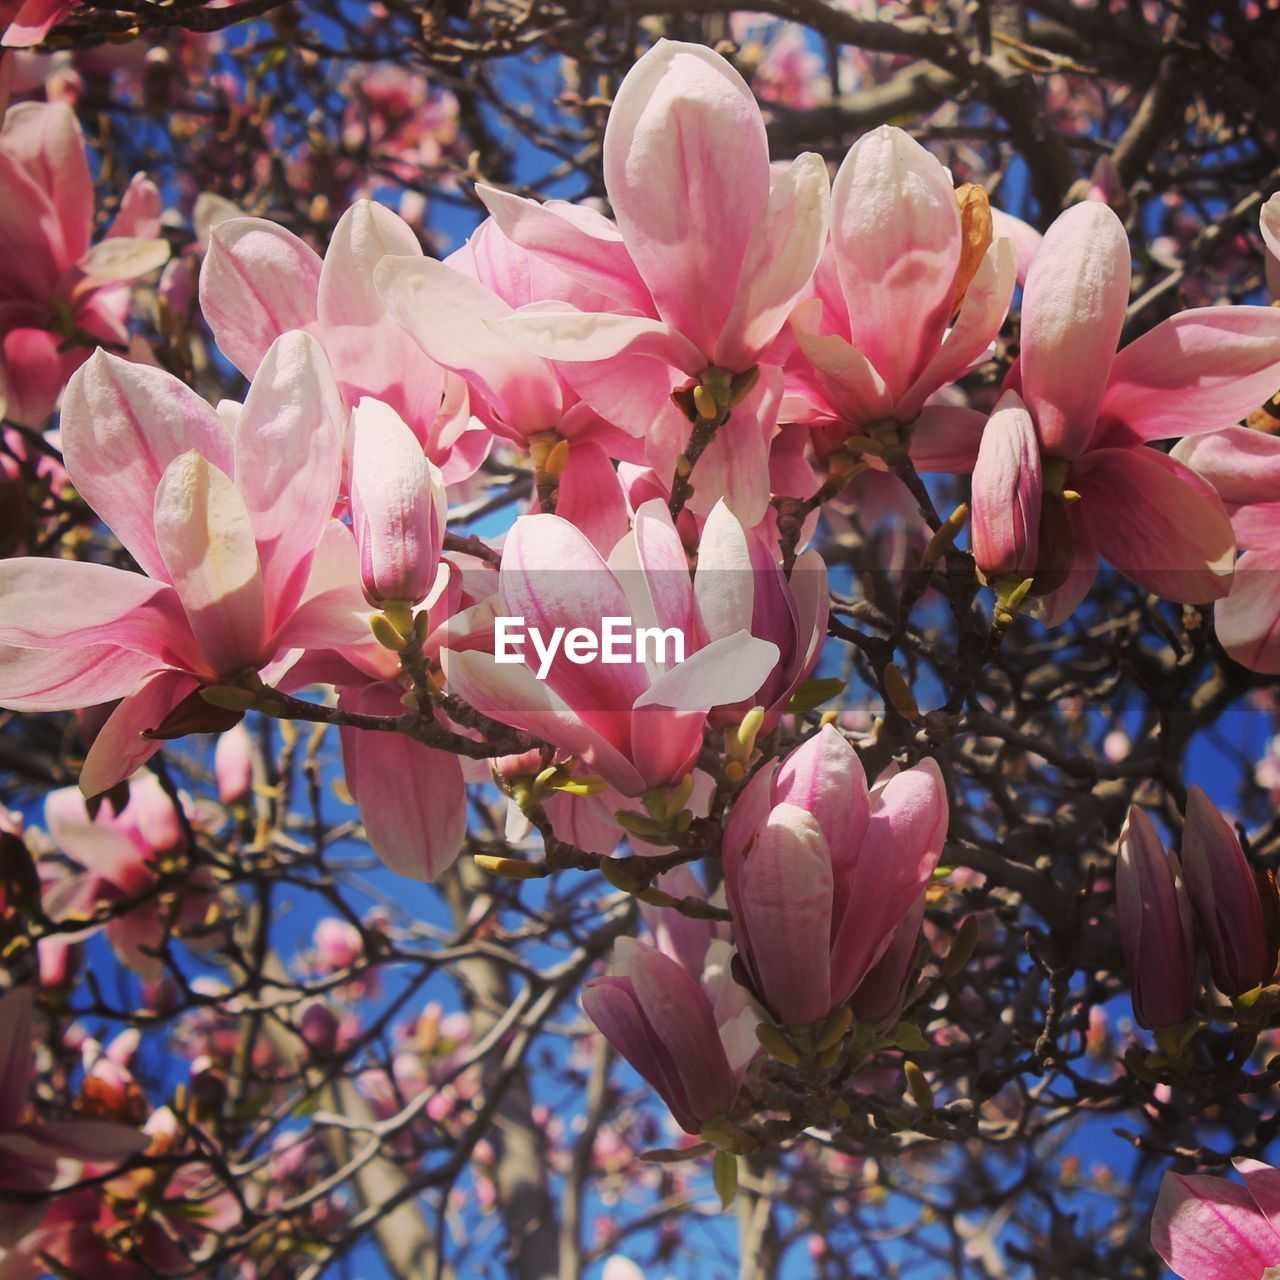 flower, pink color, growth, beauty in nature, fragility, petal, blossom, magnolia, tree, branch, freshness, nature, springtime, botany, no people, day, outdoors, flower head, twig, close-up, blooming, plant